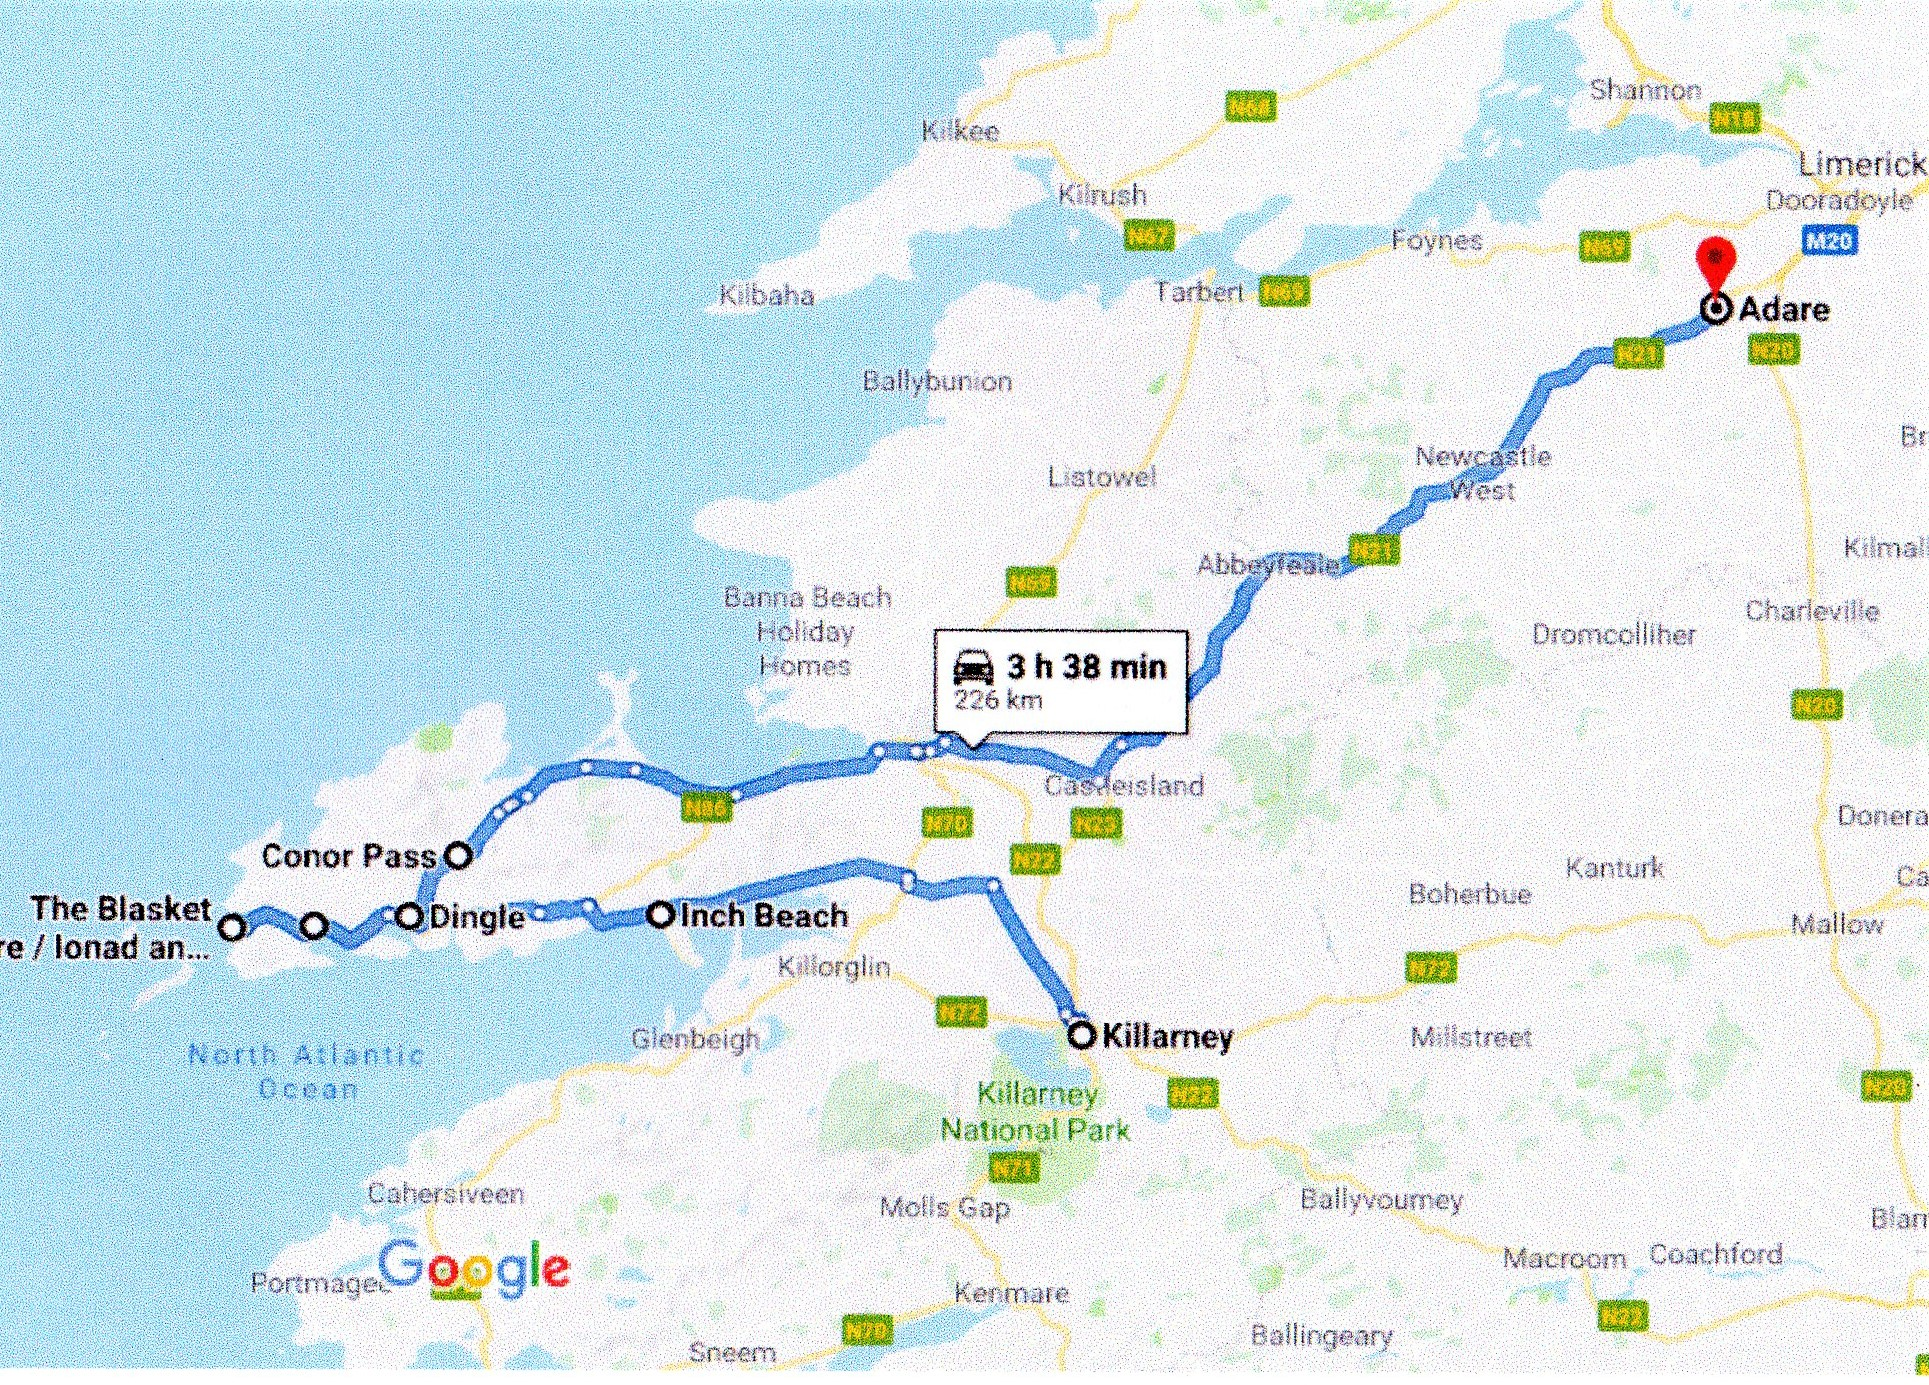 Google route map killarney to adare in county limerick